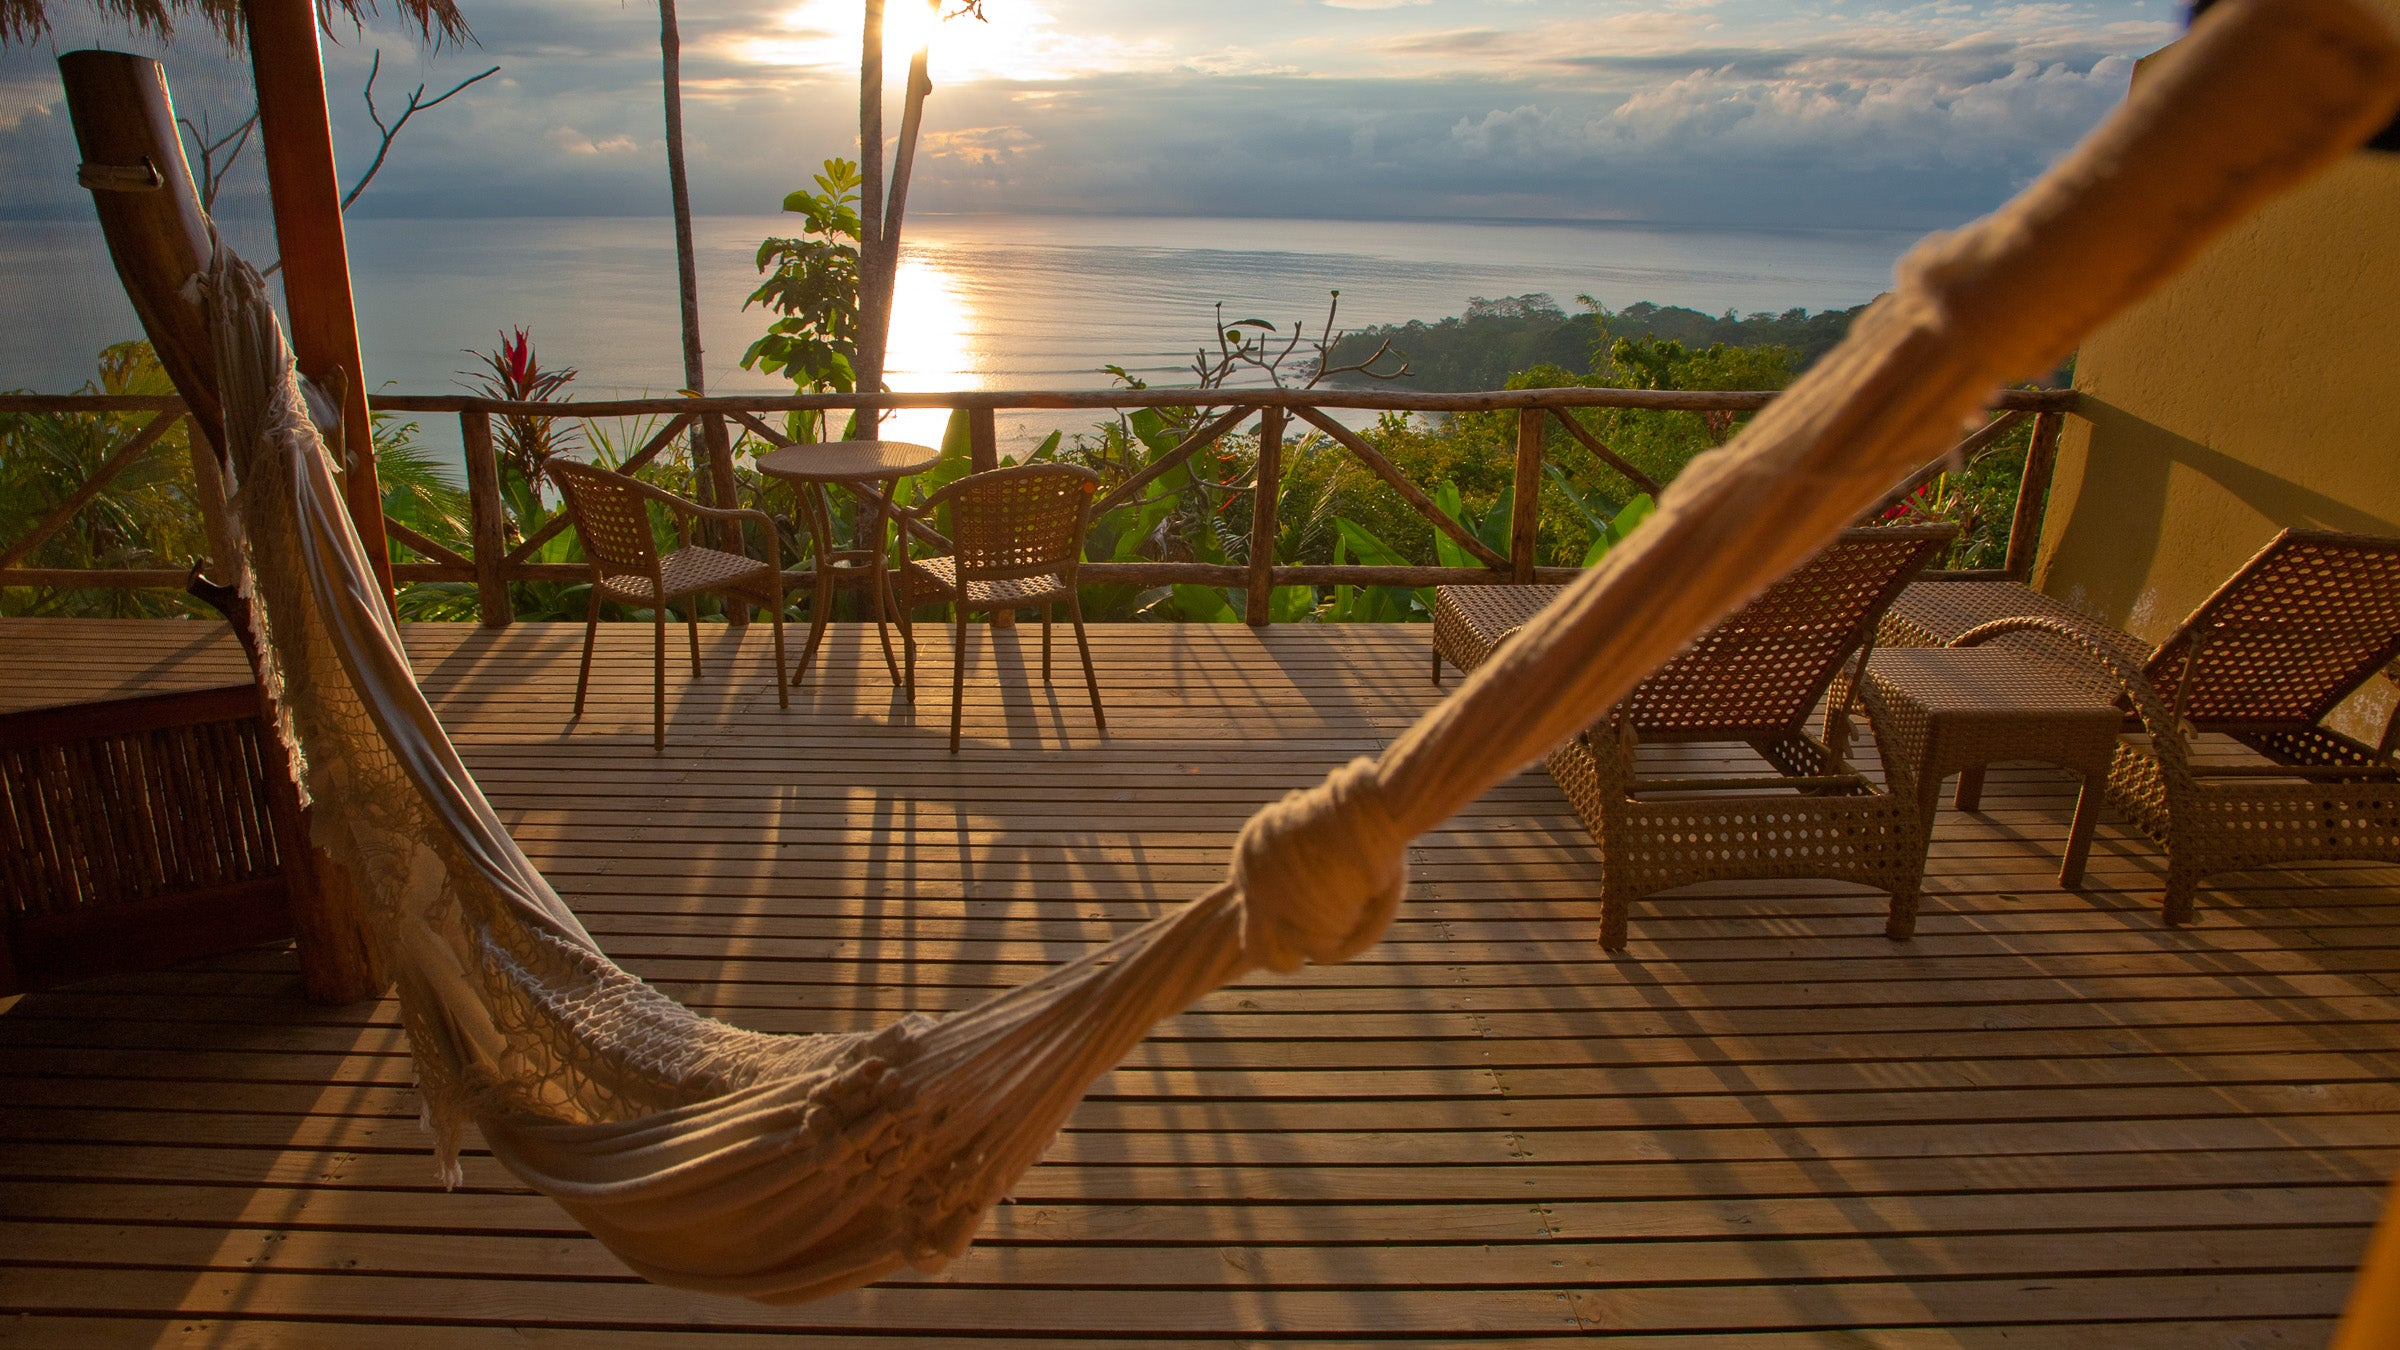 View of the ocean from a hammock